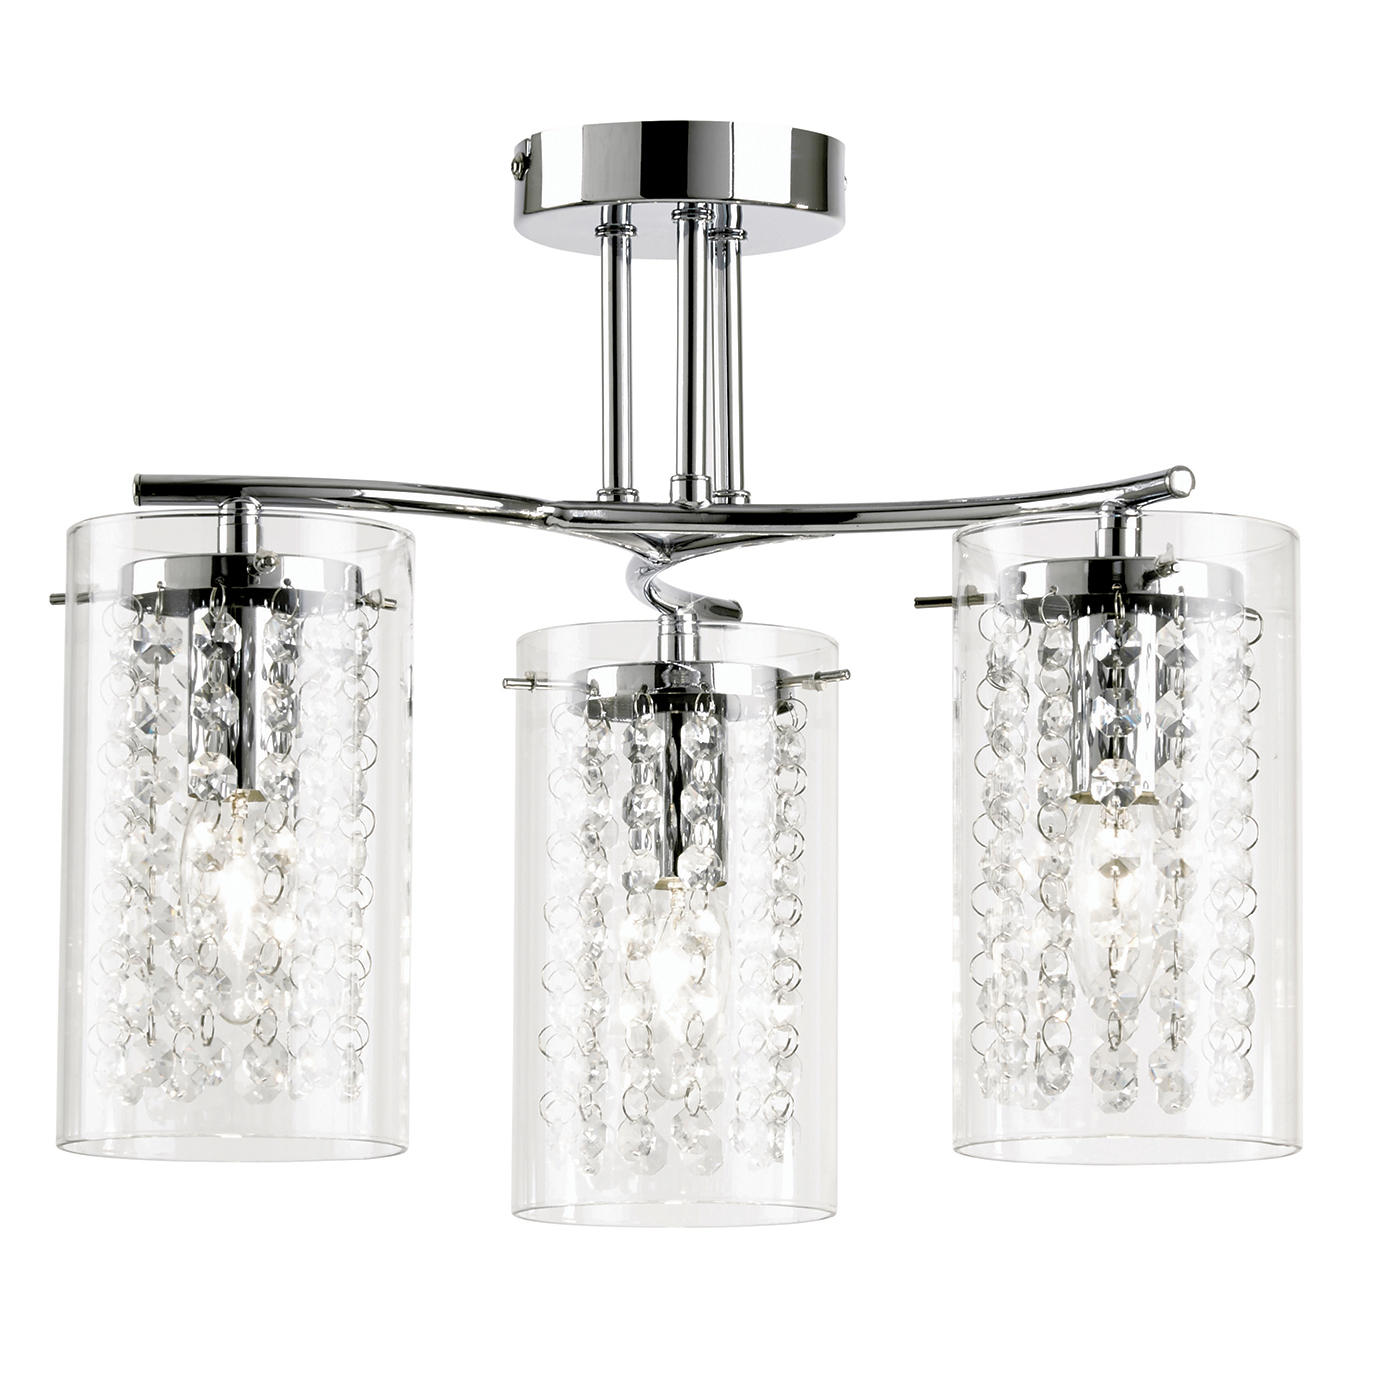 Endon Alda ceiling light 3x 40W Chrome effect plate & clear glass drops